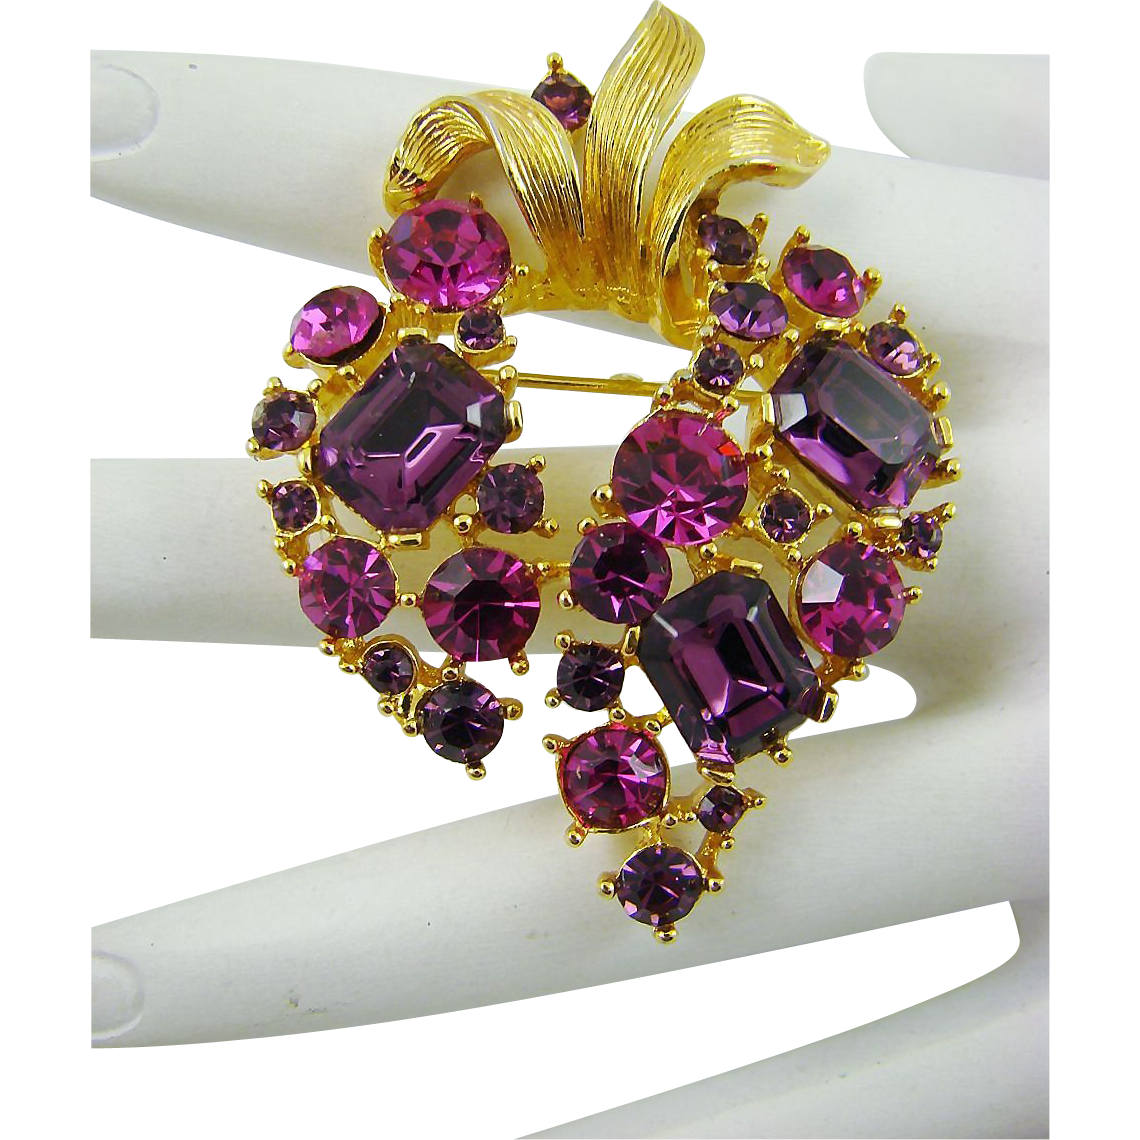 Fuchsia and Amethyst Rhinestone Brooch by M. Jent